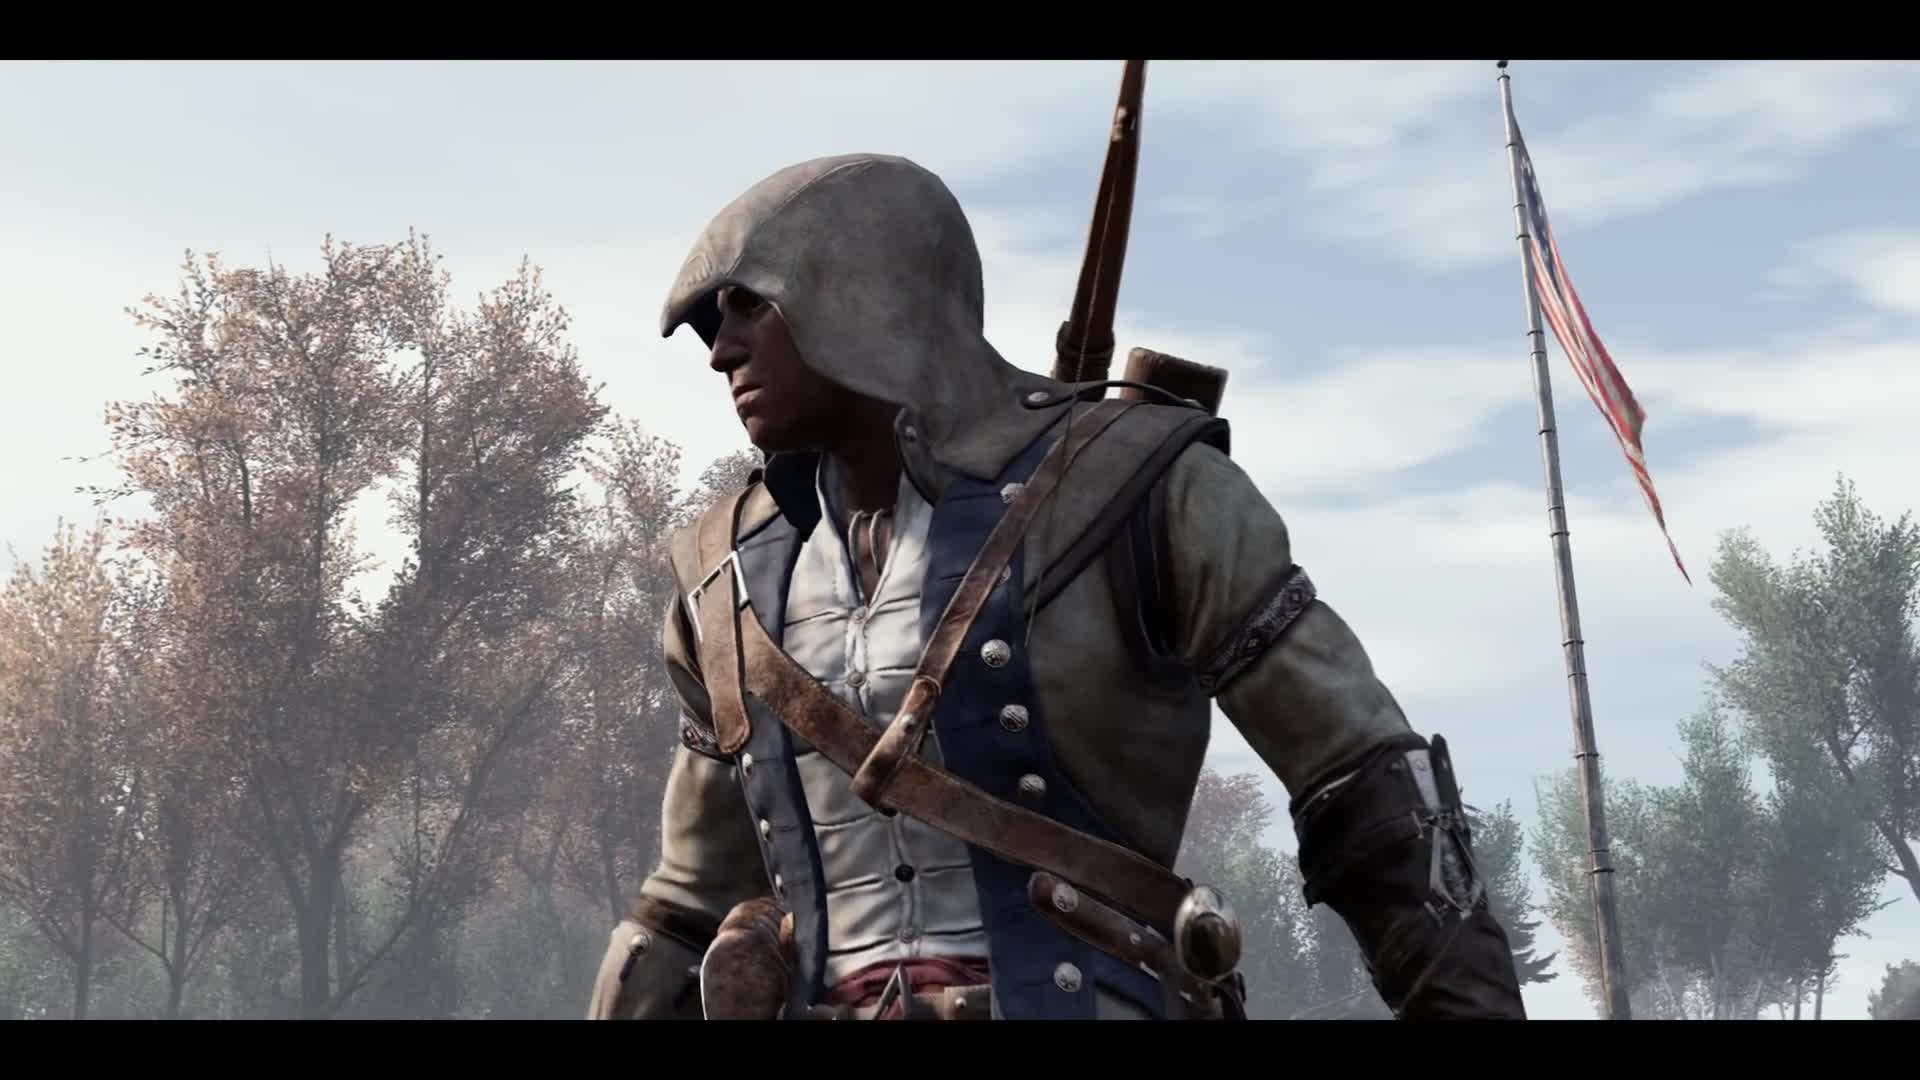 Trailer, Ubisoft, Assassin's Creed, Assassin's Creed 3, Remake, Remastered, Assassin's Creed 3 Remastered, Assassin's Creed III, Assassin's Creed III Remastered